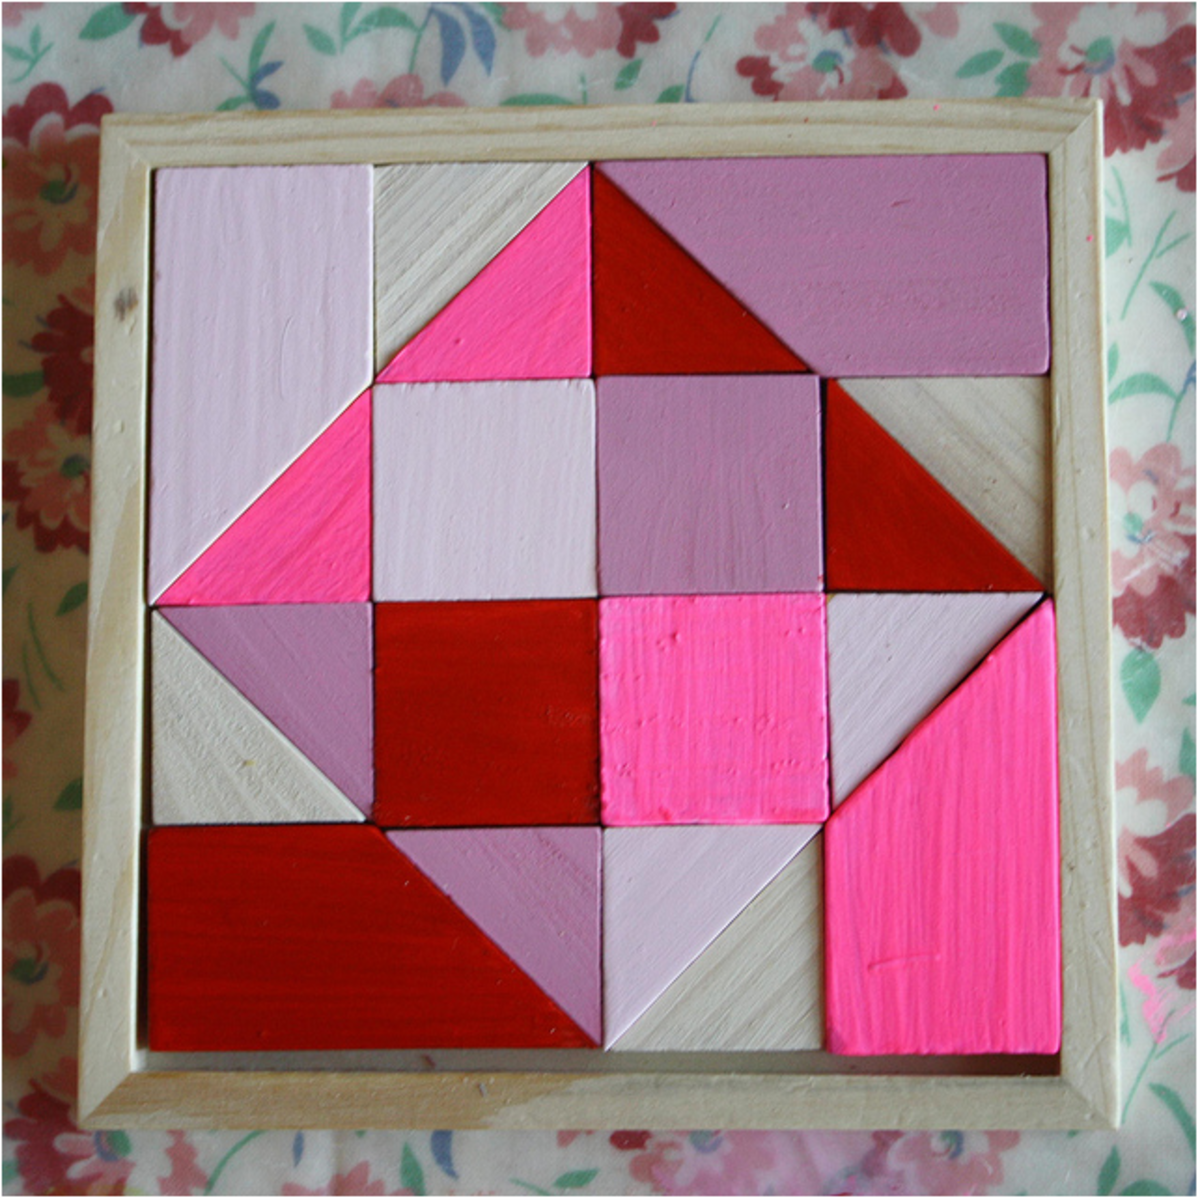 A puzzle like this can be made quite easily by starting with a square of thick wood and cutting it into different shaped pieces. You can then construct a wooden frame to hold all of the pieces together in the original square shape. Simple!